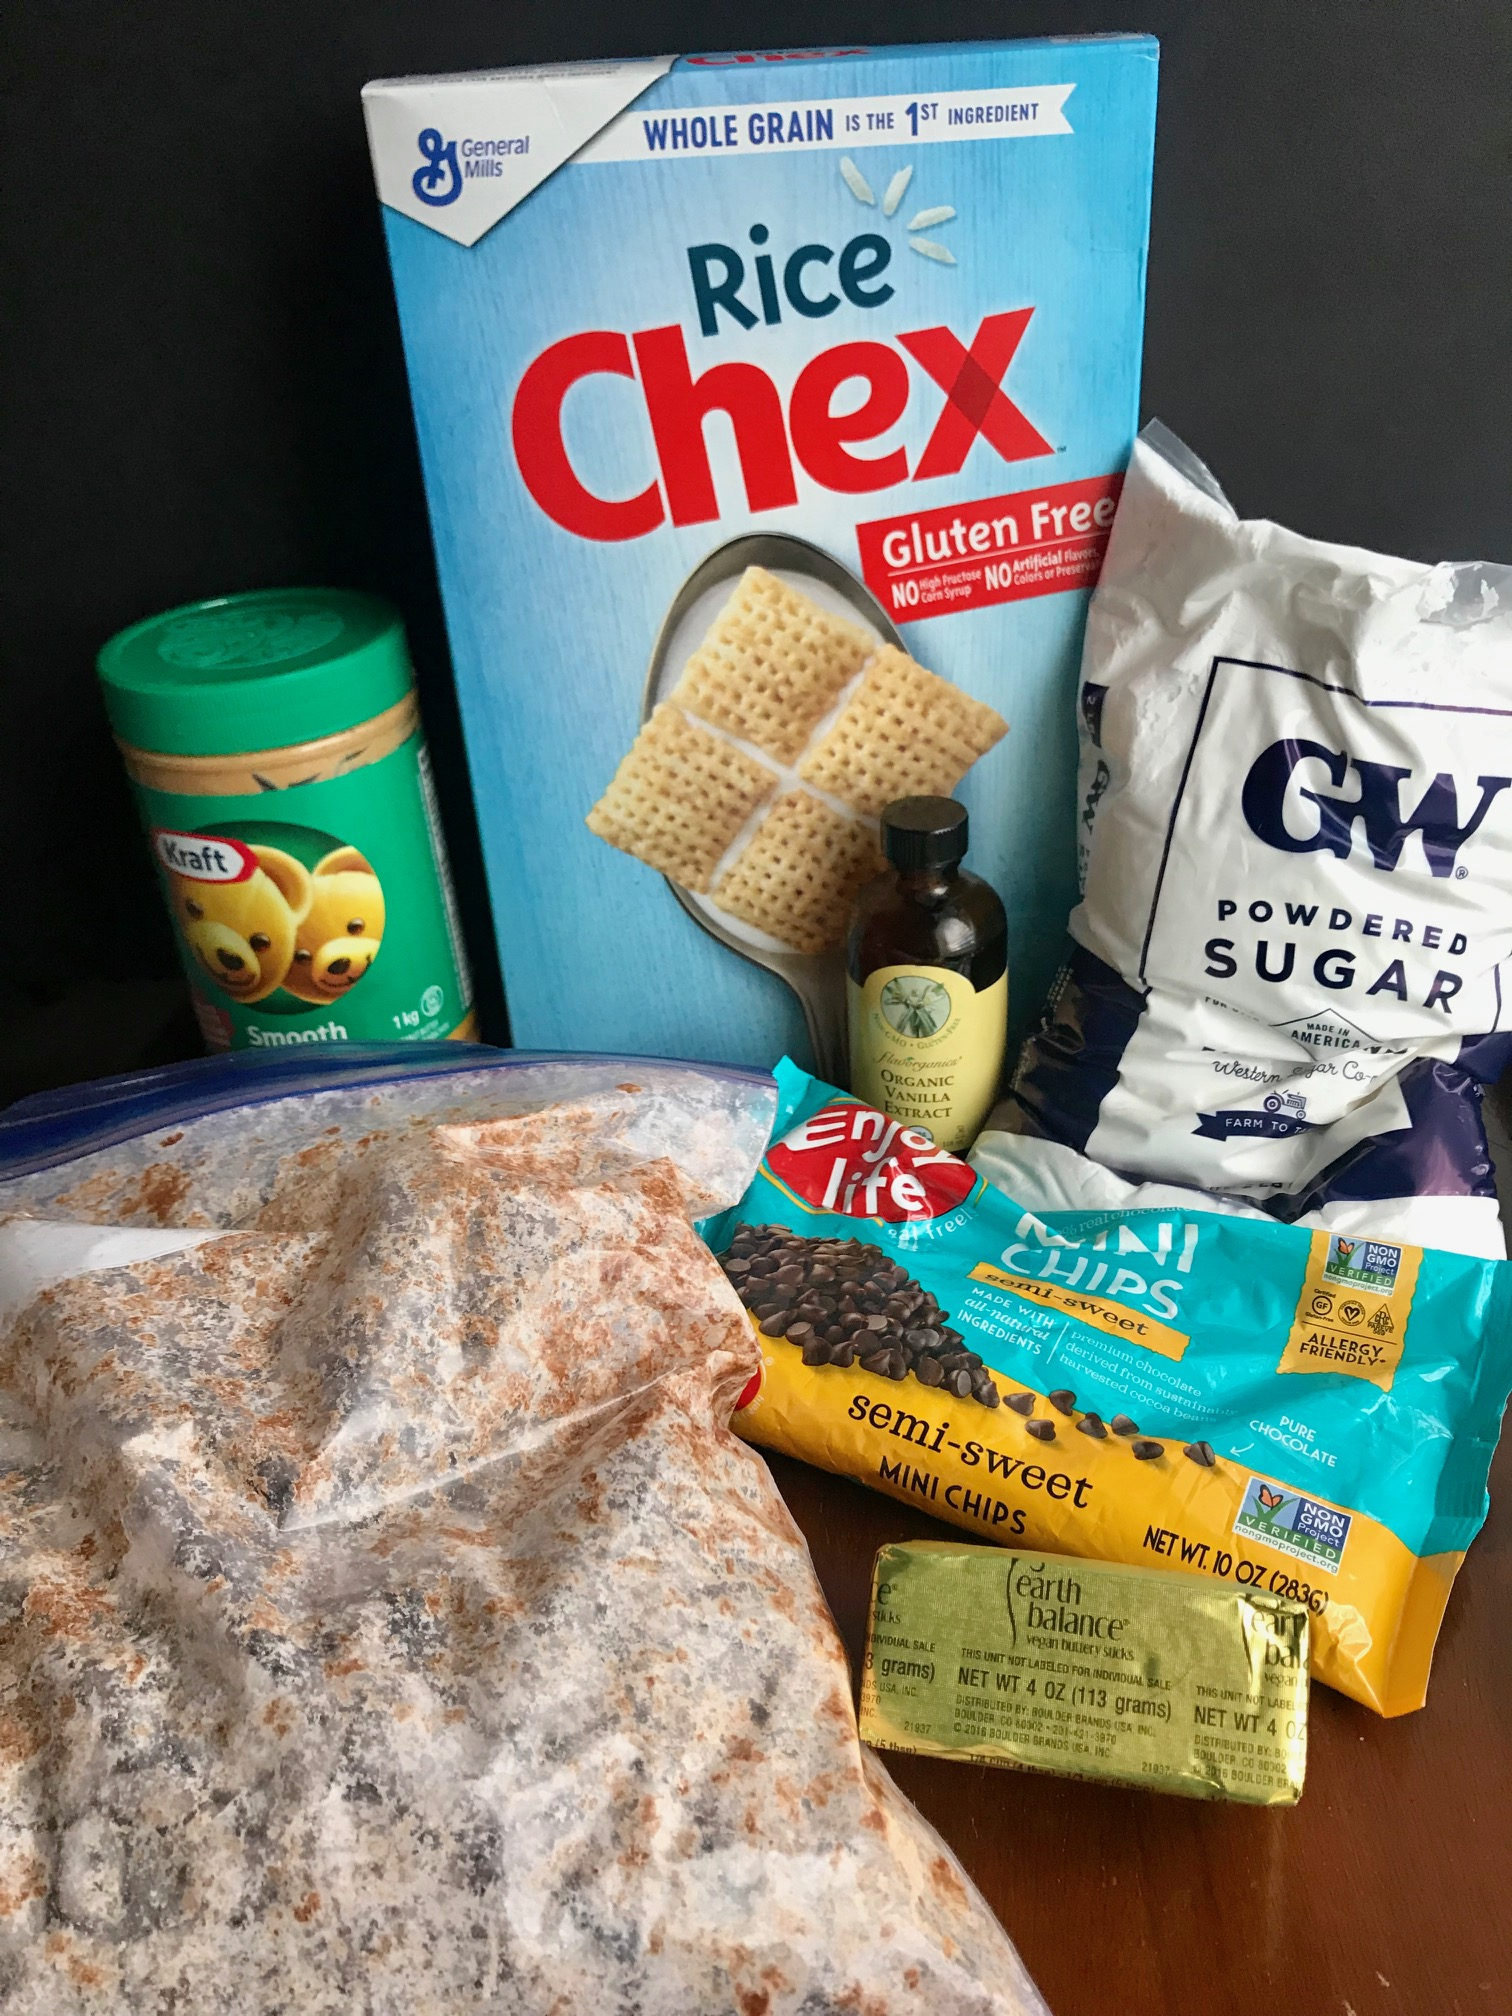 The ingredients next to a bag of puppy chow.